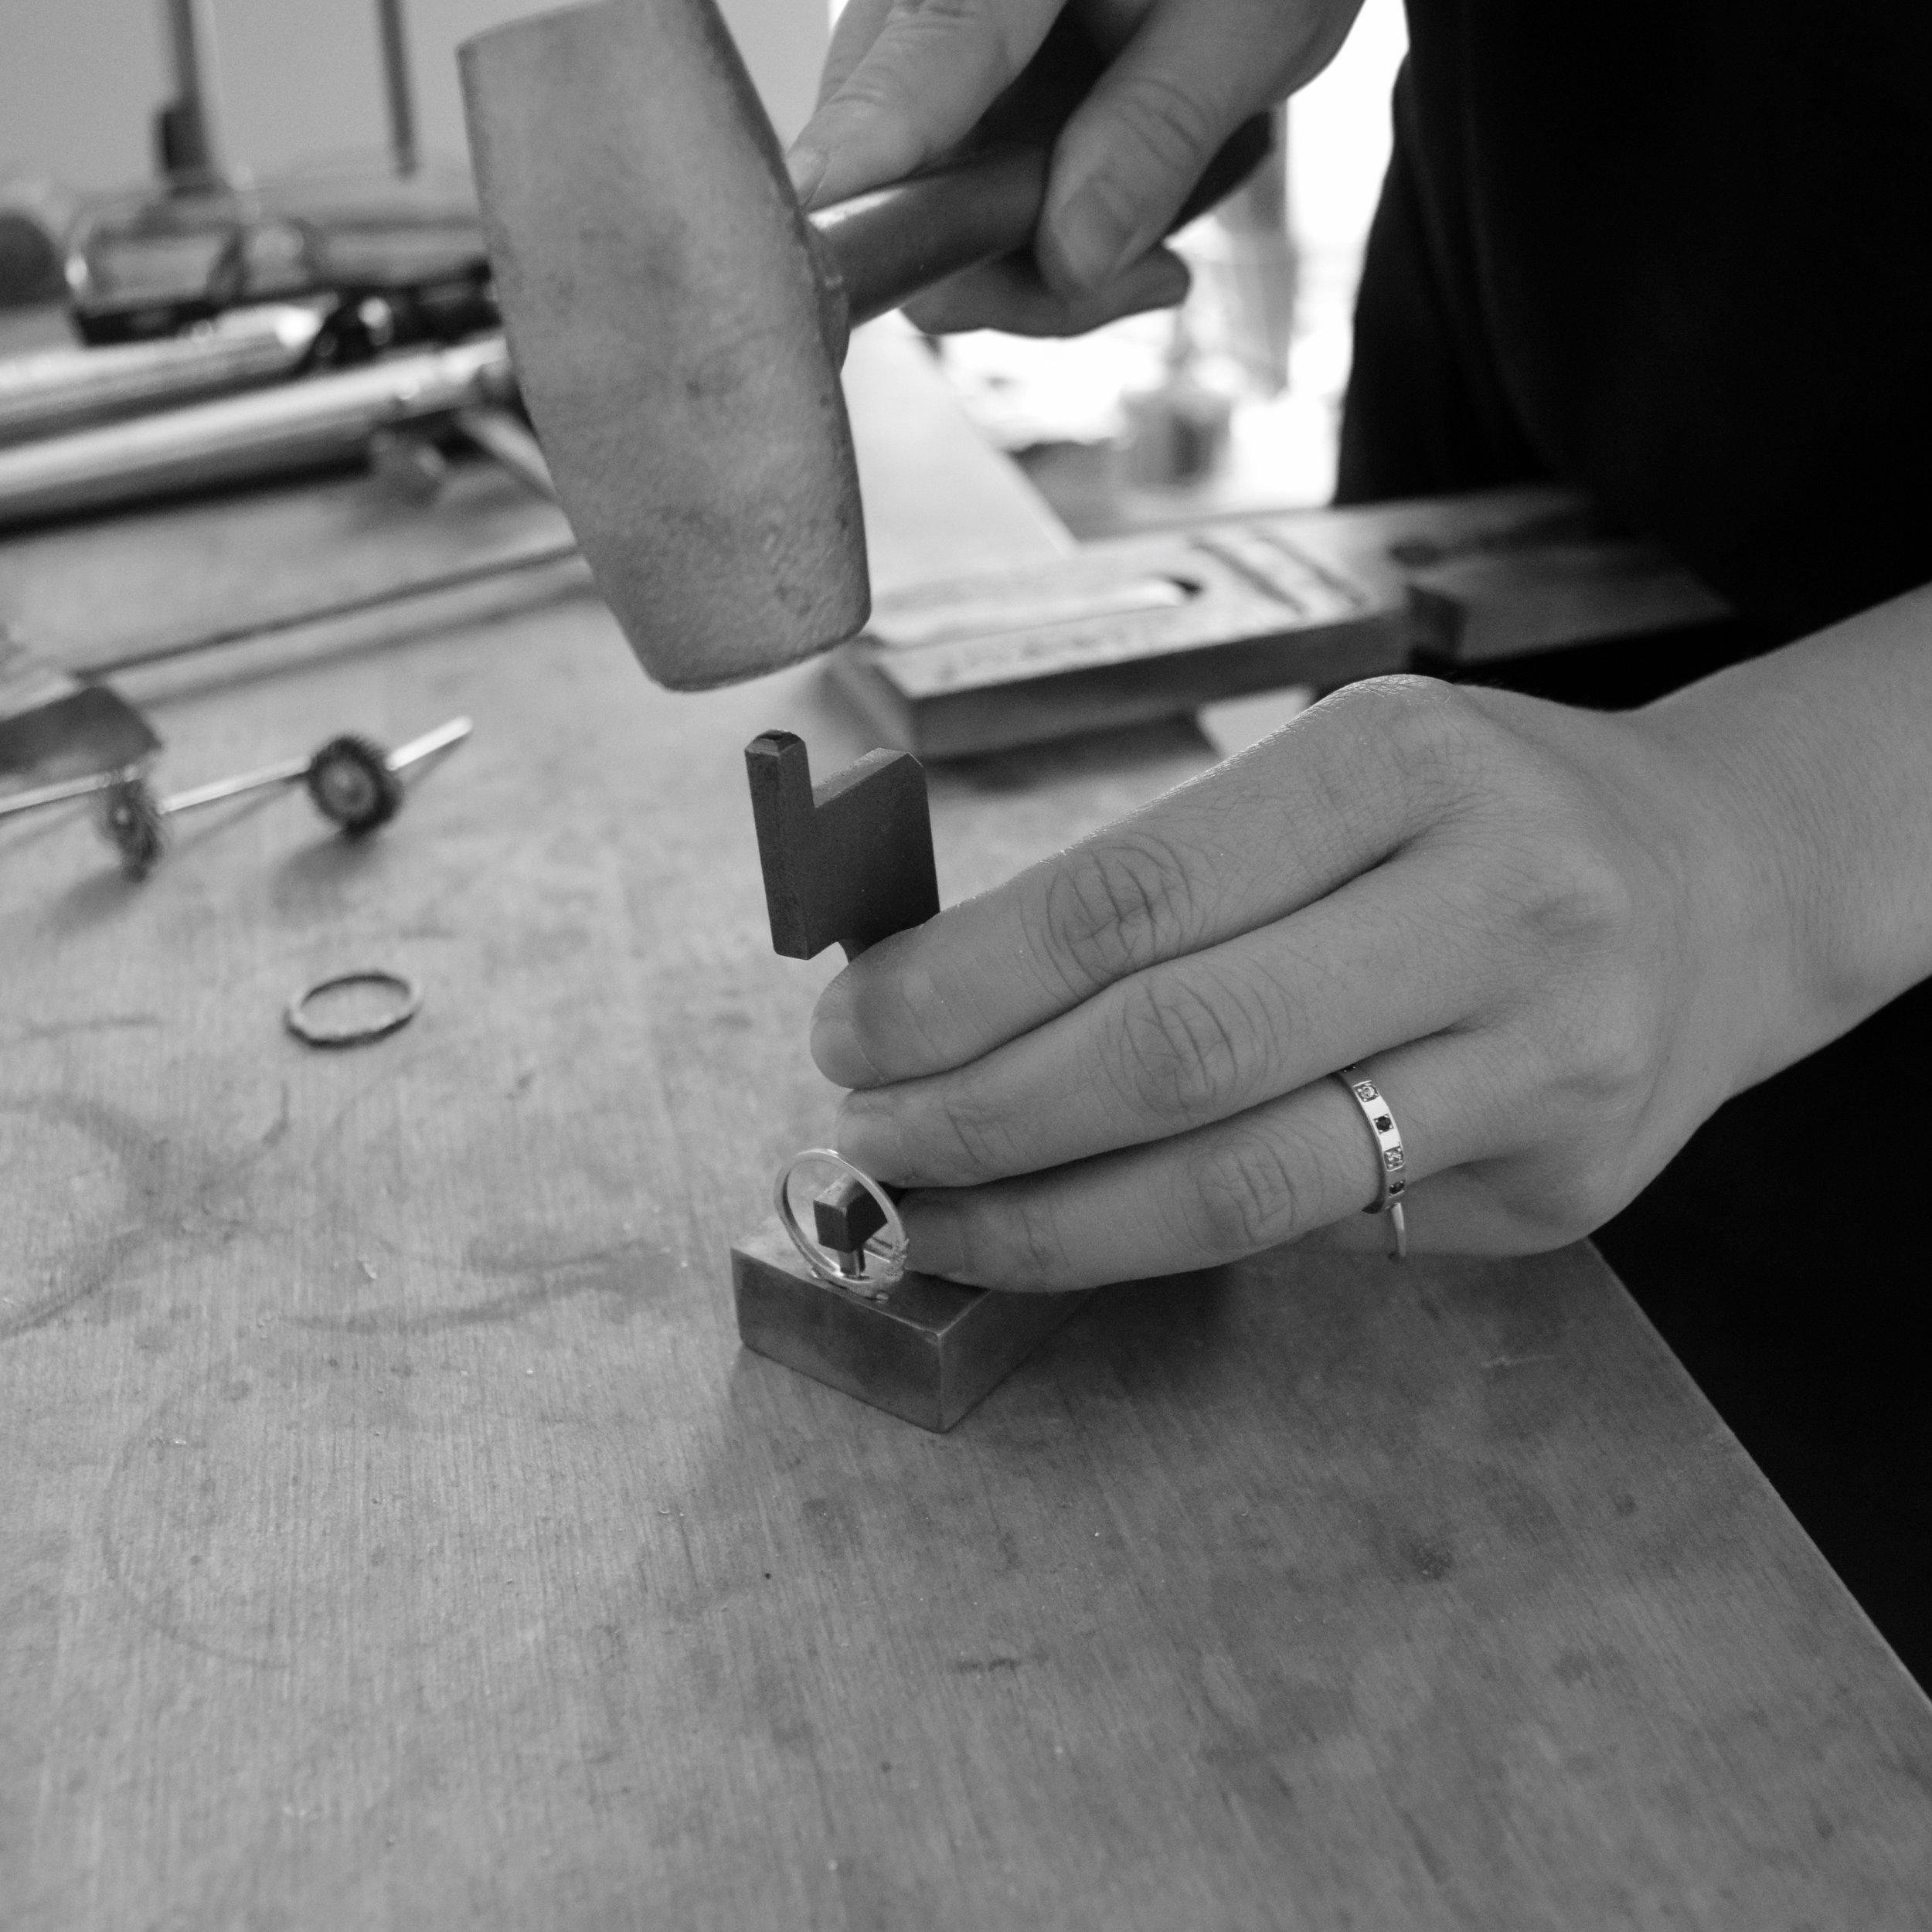 7. We then stamp the ring's inside to mark its metal content.